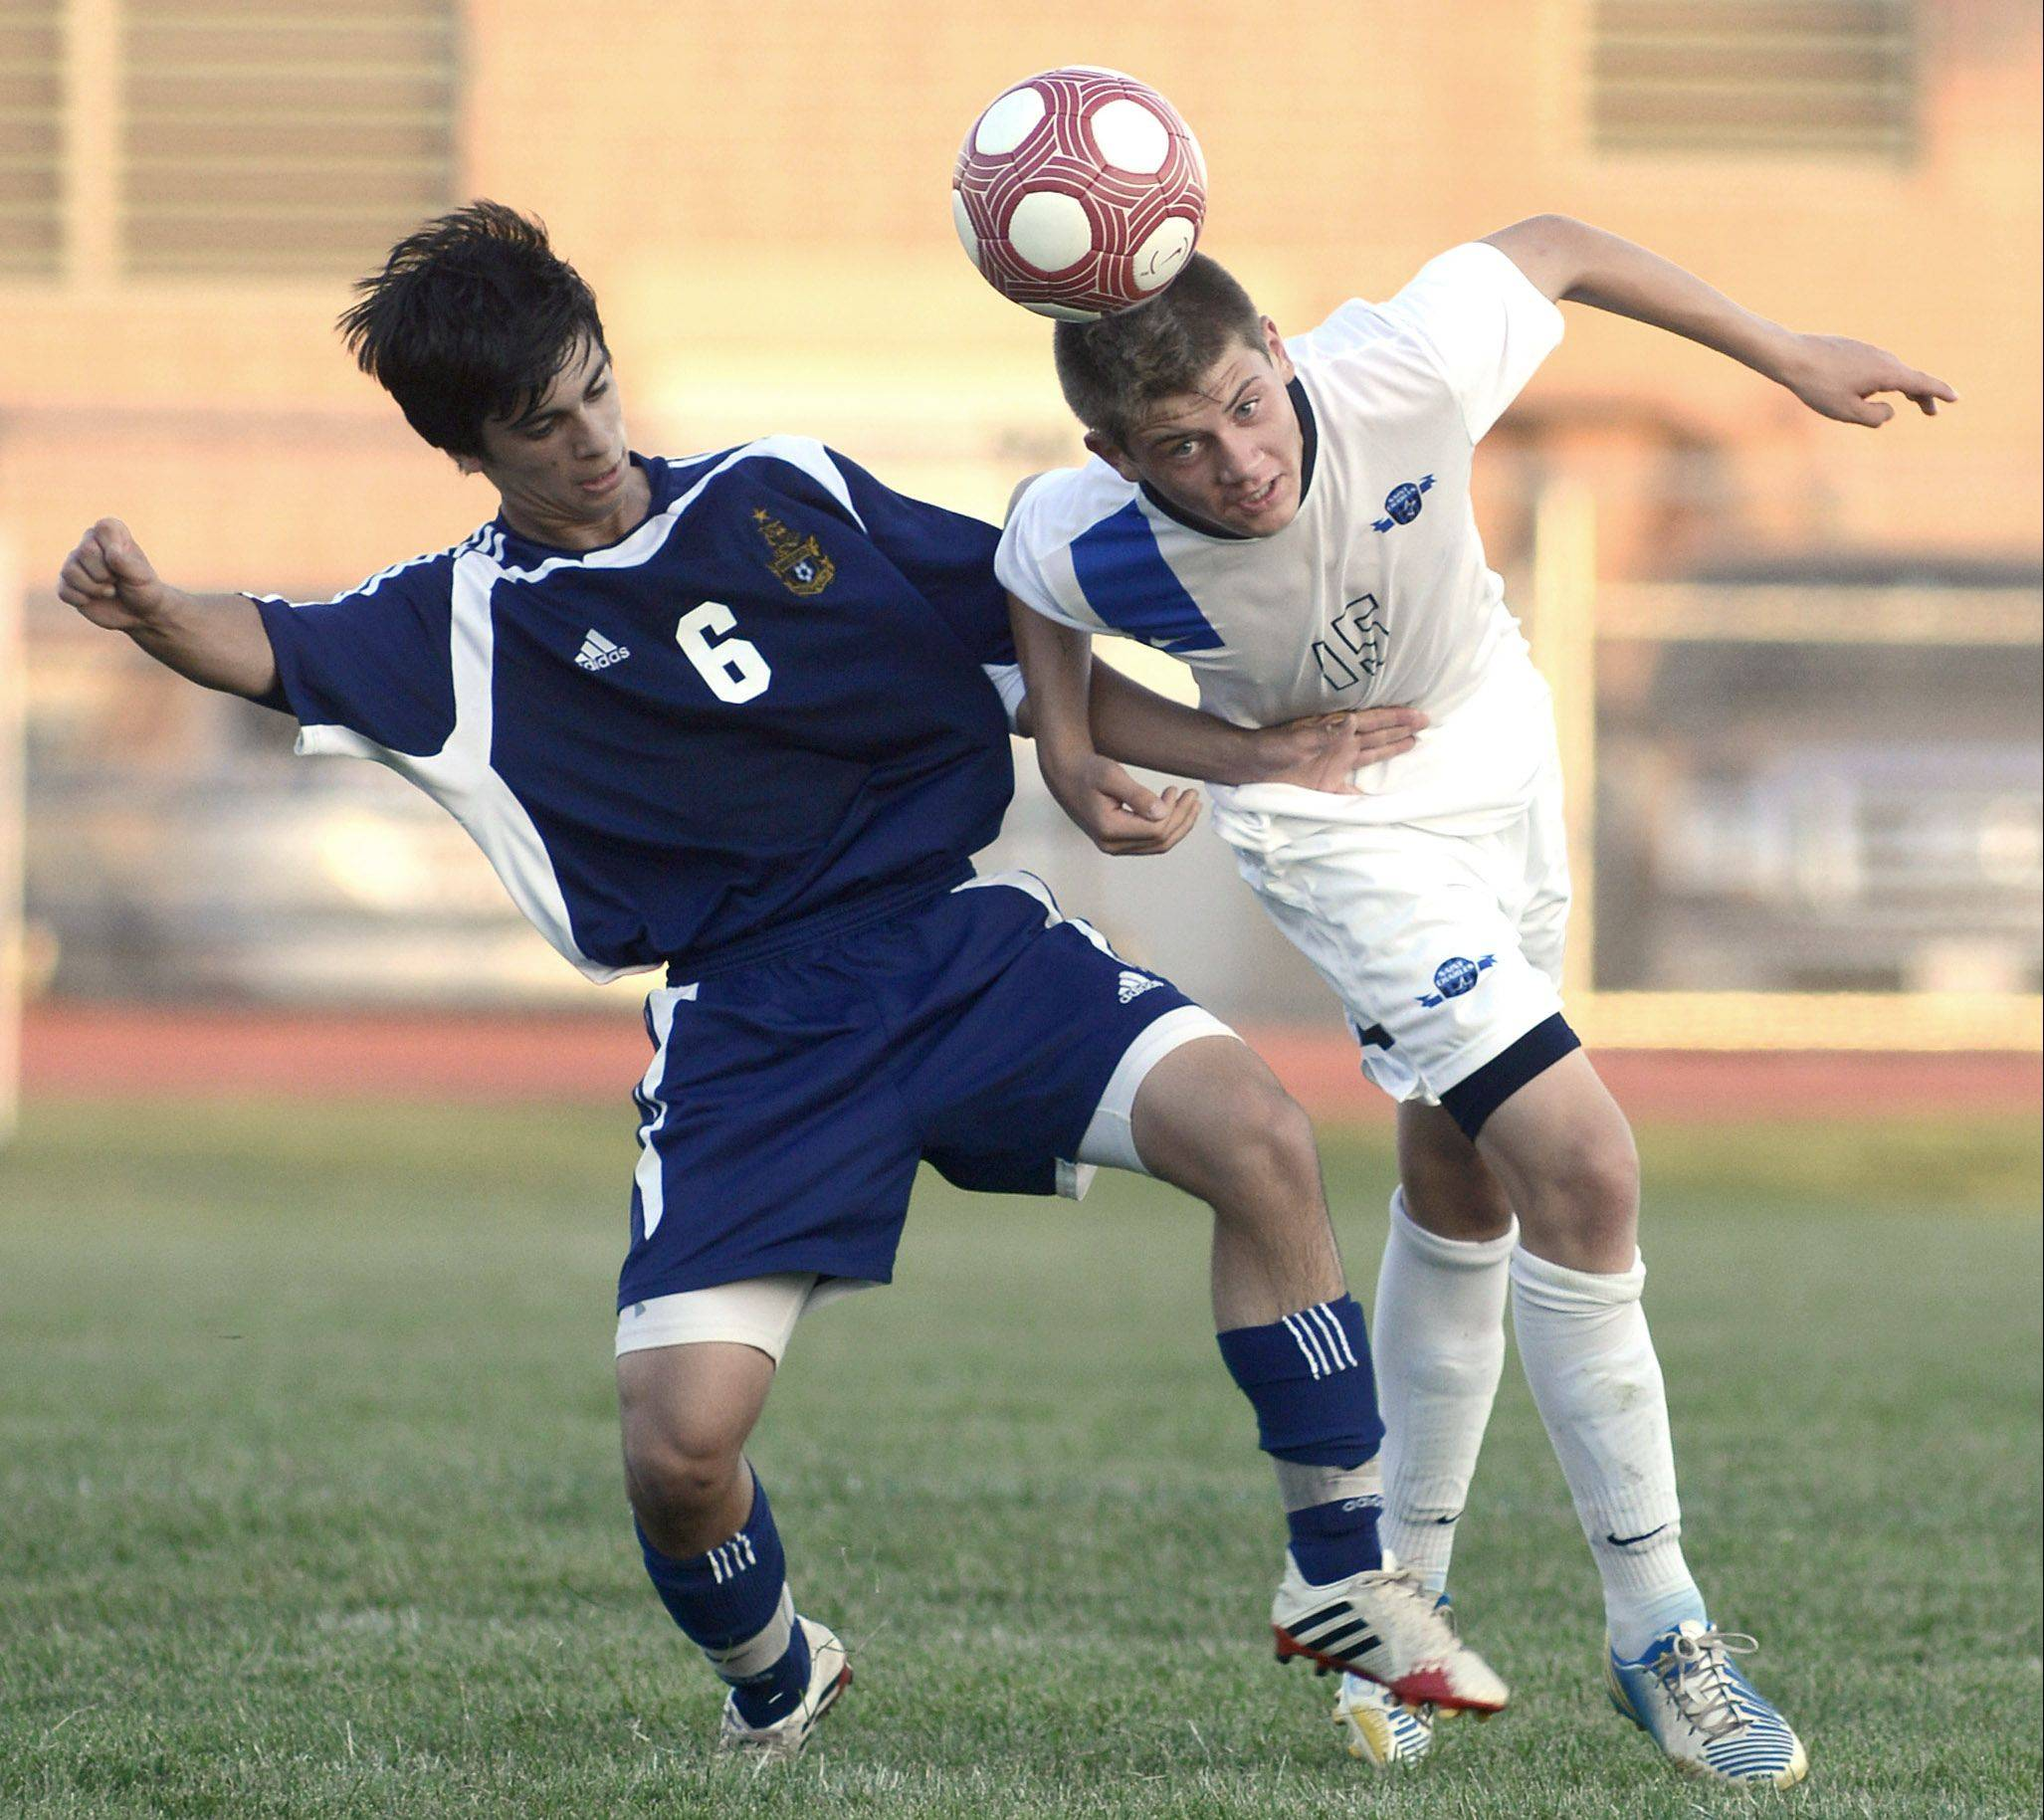 St. Charles North's Ryan Olson heads the ball against Neuqua Valley's Kas Baladi on Tuesday in St. Charles.